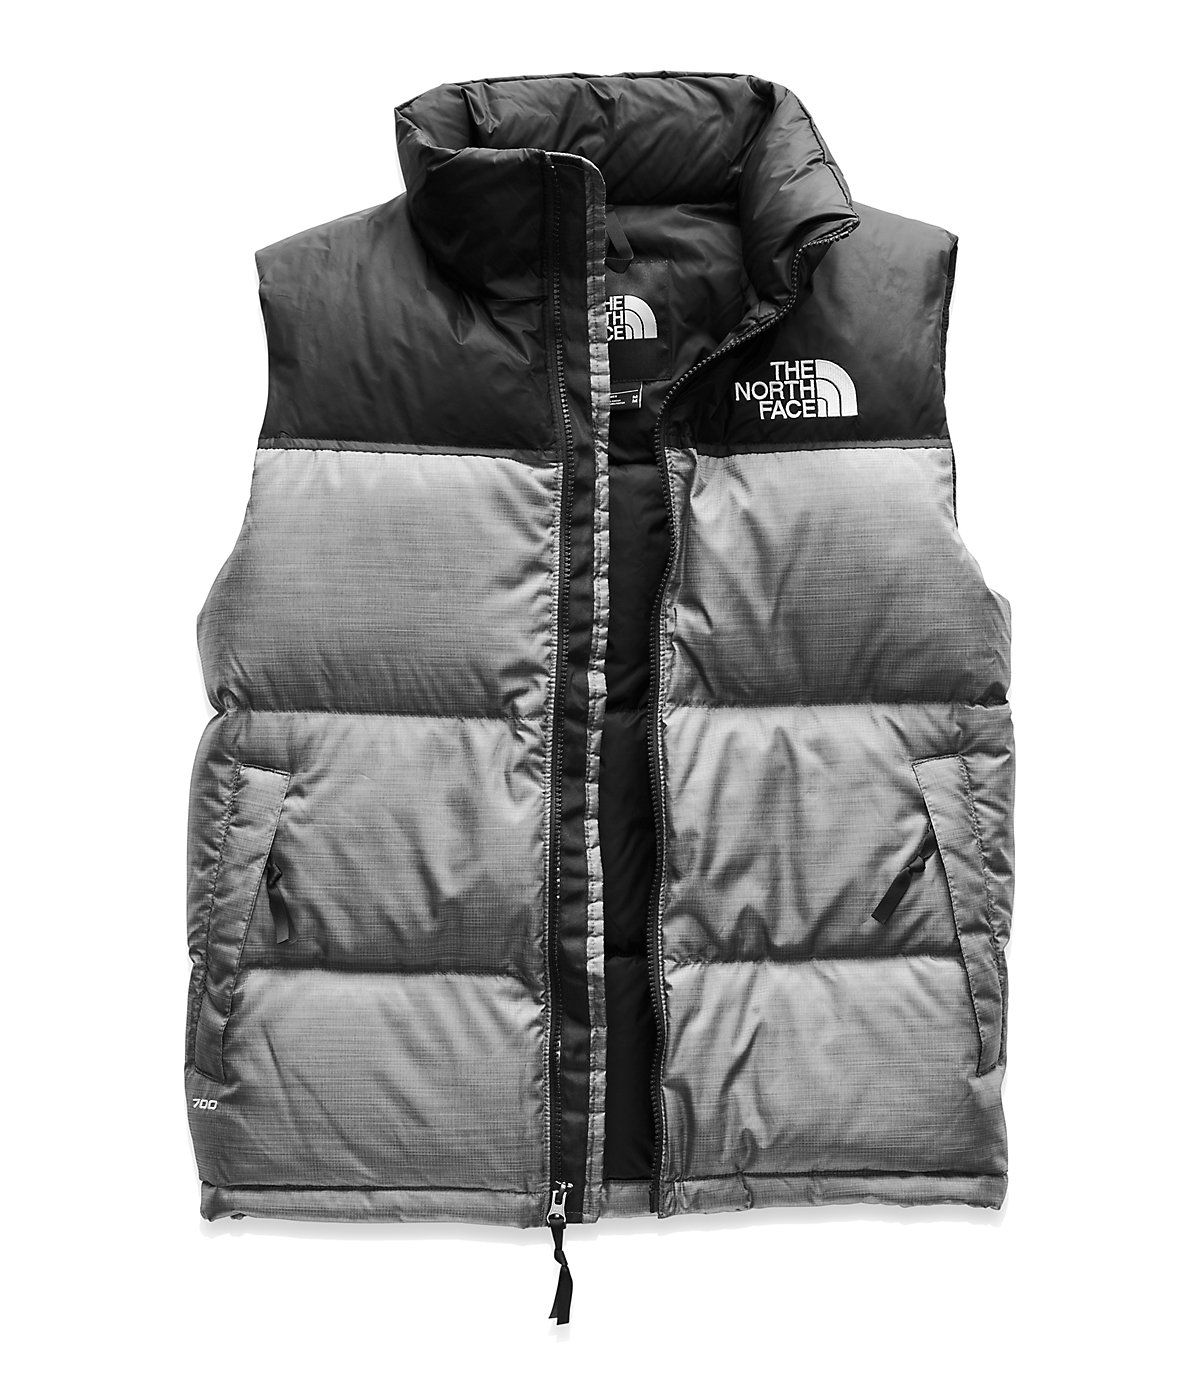 989f5a314402 The North Face Men s 1996 Retro Nuptse Vest